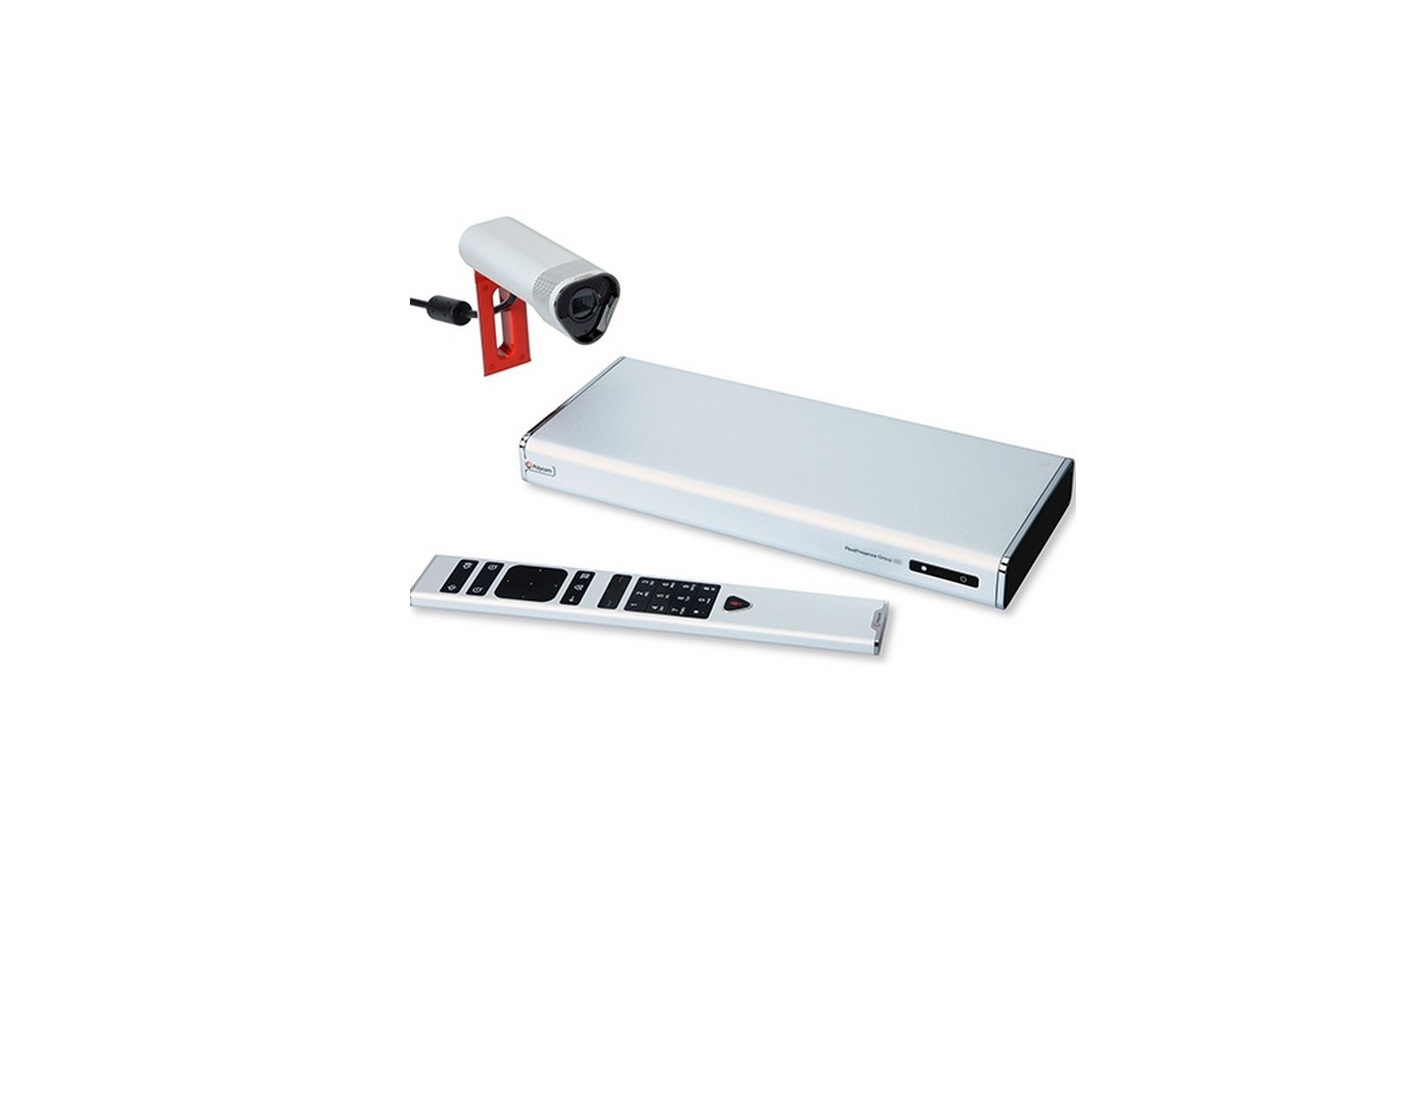 Polycom RealPresence Group 500 W EagleEye Acoustic Camera Video Conferencing Kit 7200-63550-001